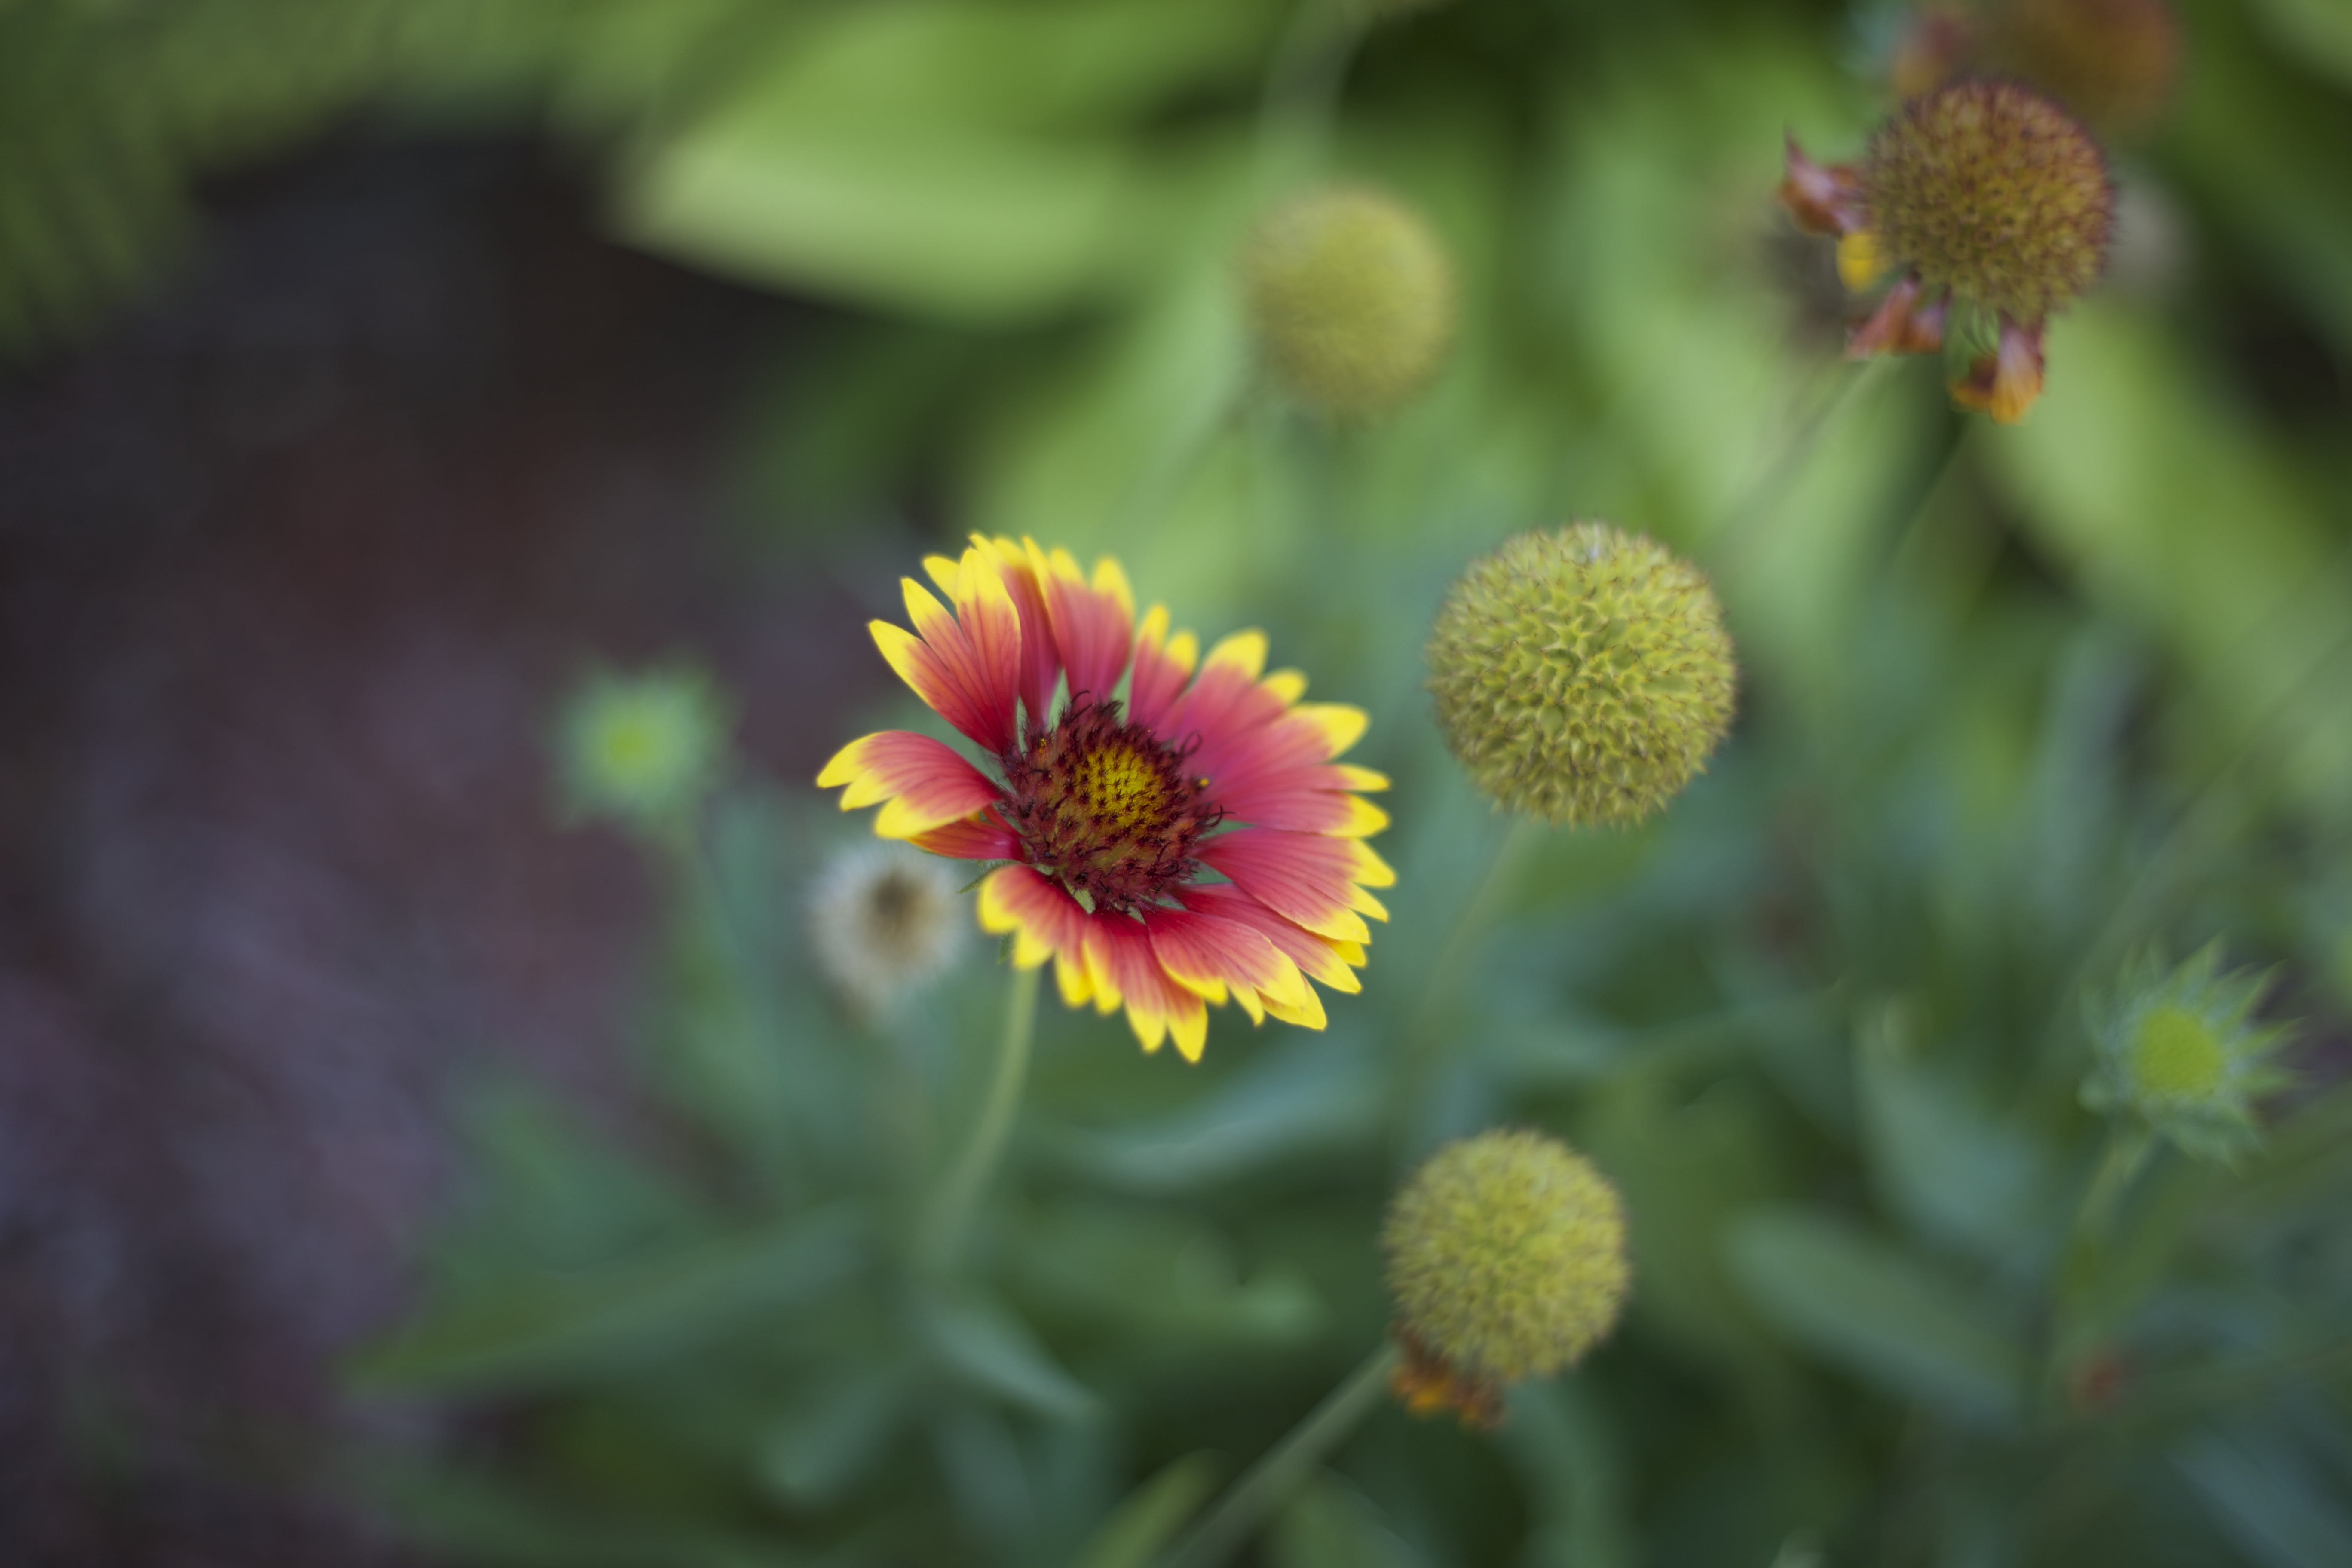 Red and Yellow Multi Petal Flower